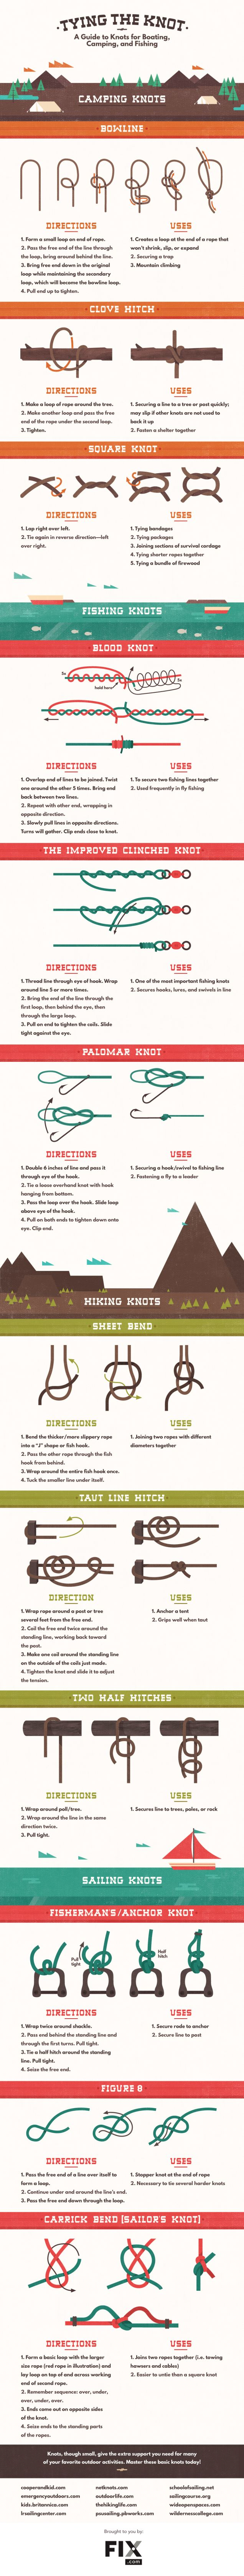 If the only knot you know involves tying your shoes, then this infographic provides clear,...